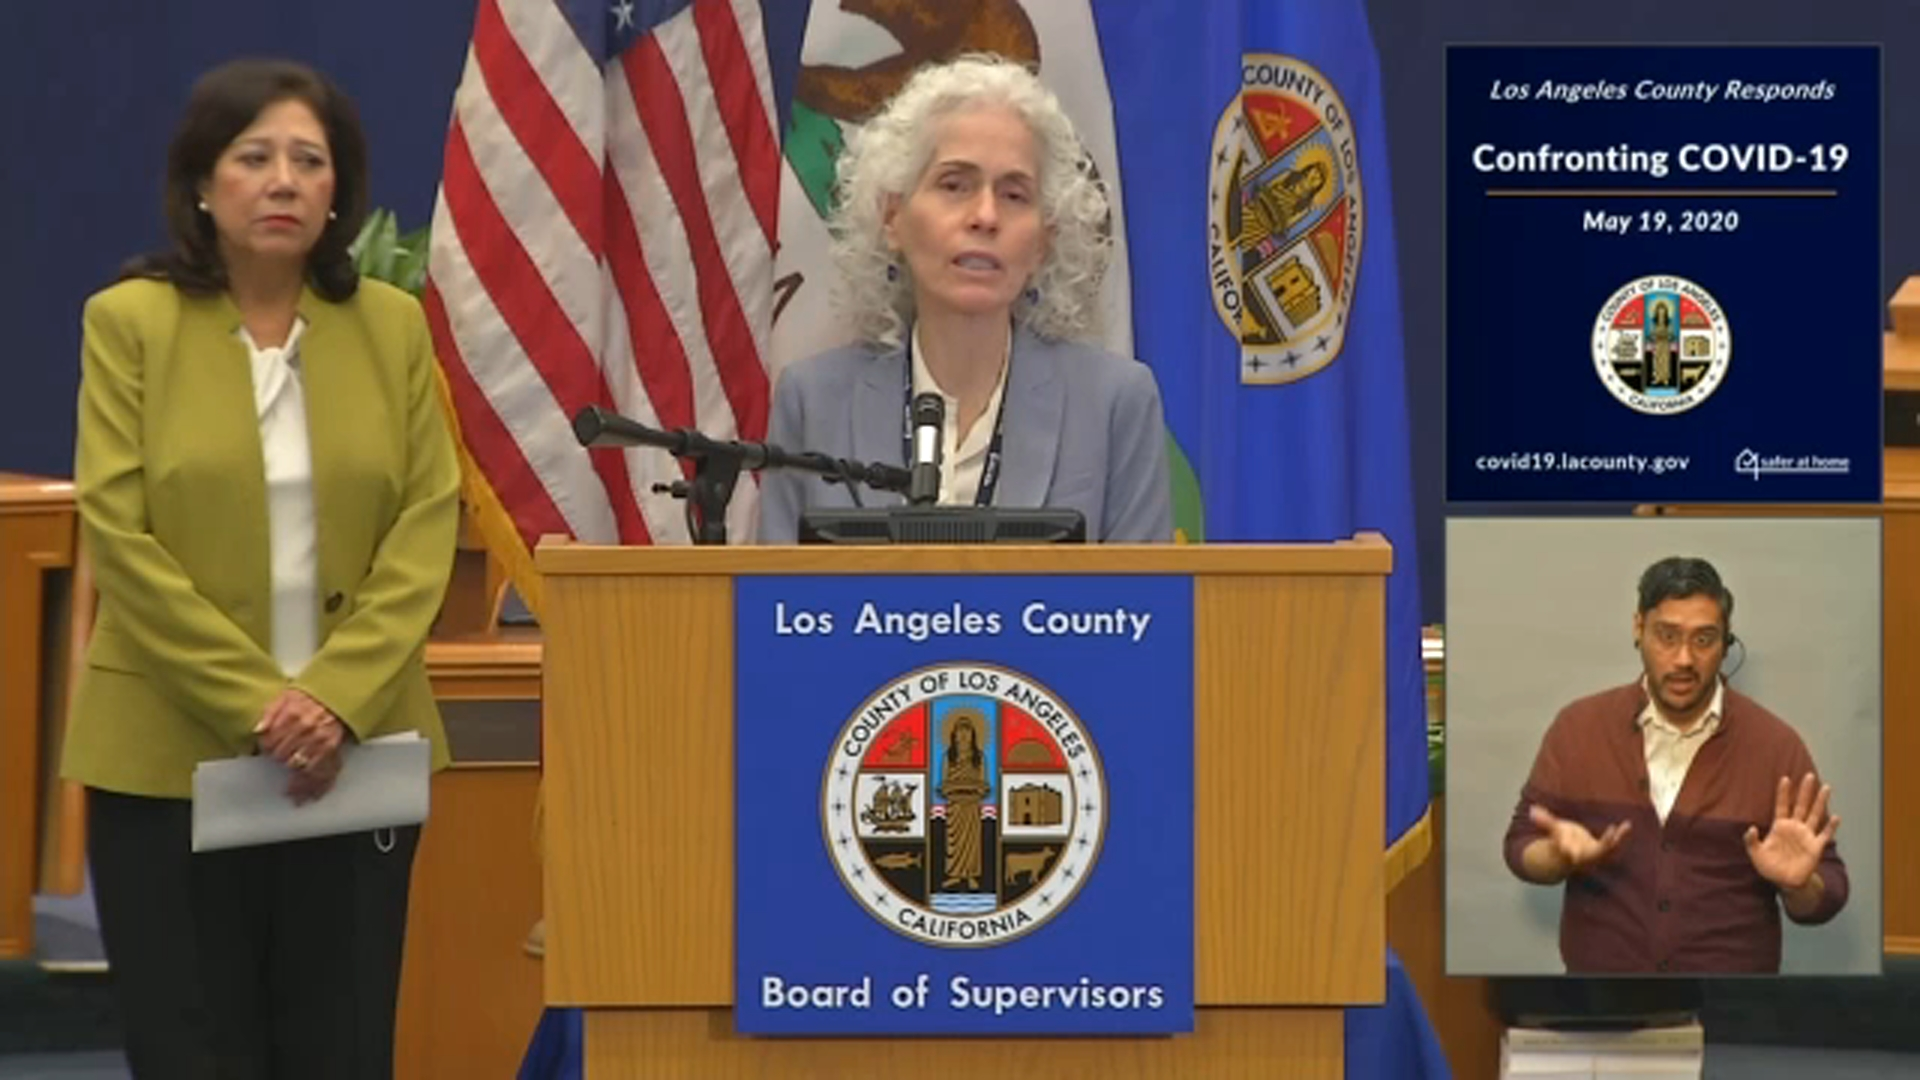 Reopening Los Angeles County Date To Reopen Potentially Set For July 4 Amid Coronavirus Pandemic Abc7 San Francisco